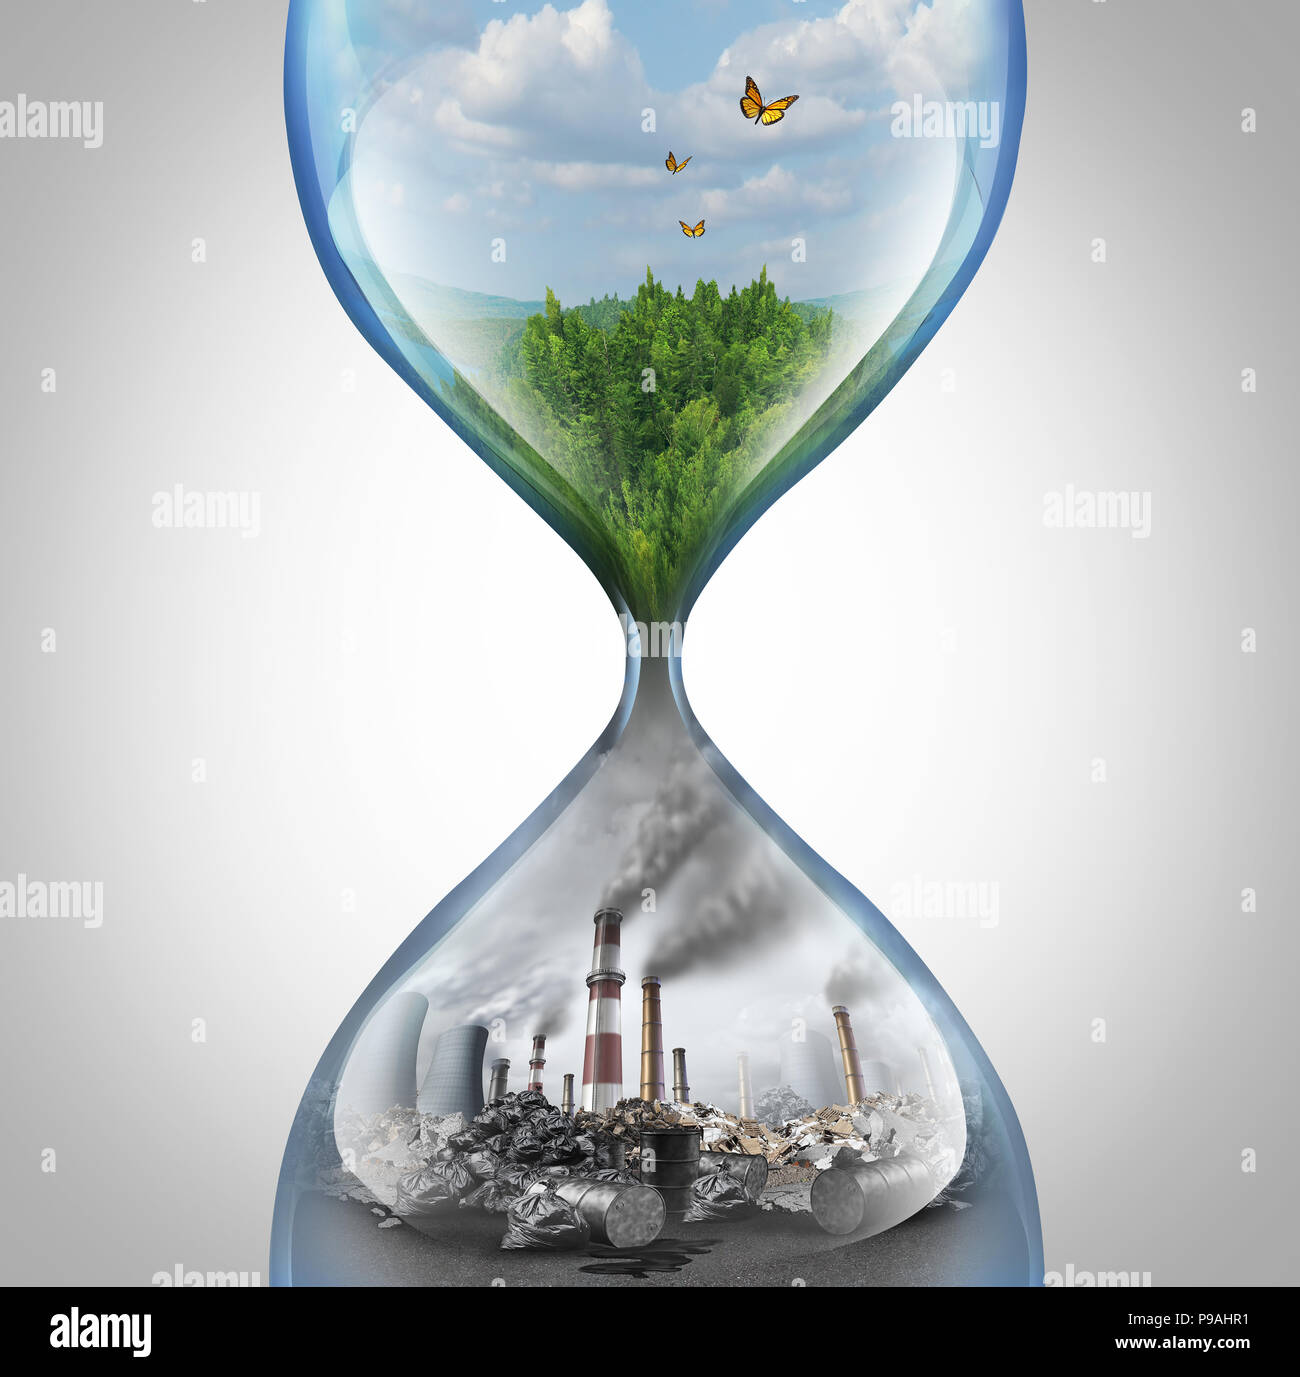 Rate of environmental damage and climate change urgency concept as a green natural habitat sinking into a pollution and toxic environment. - Stock Image